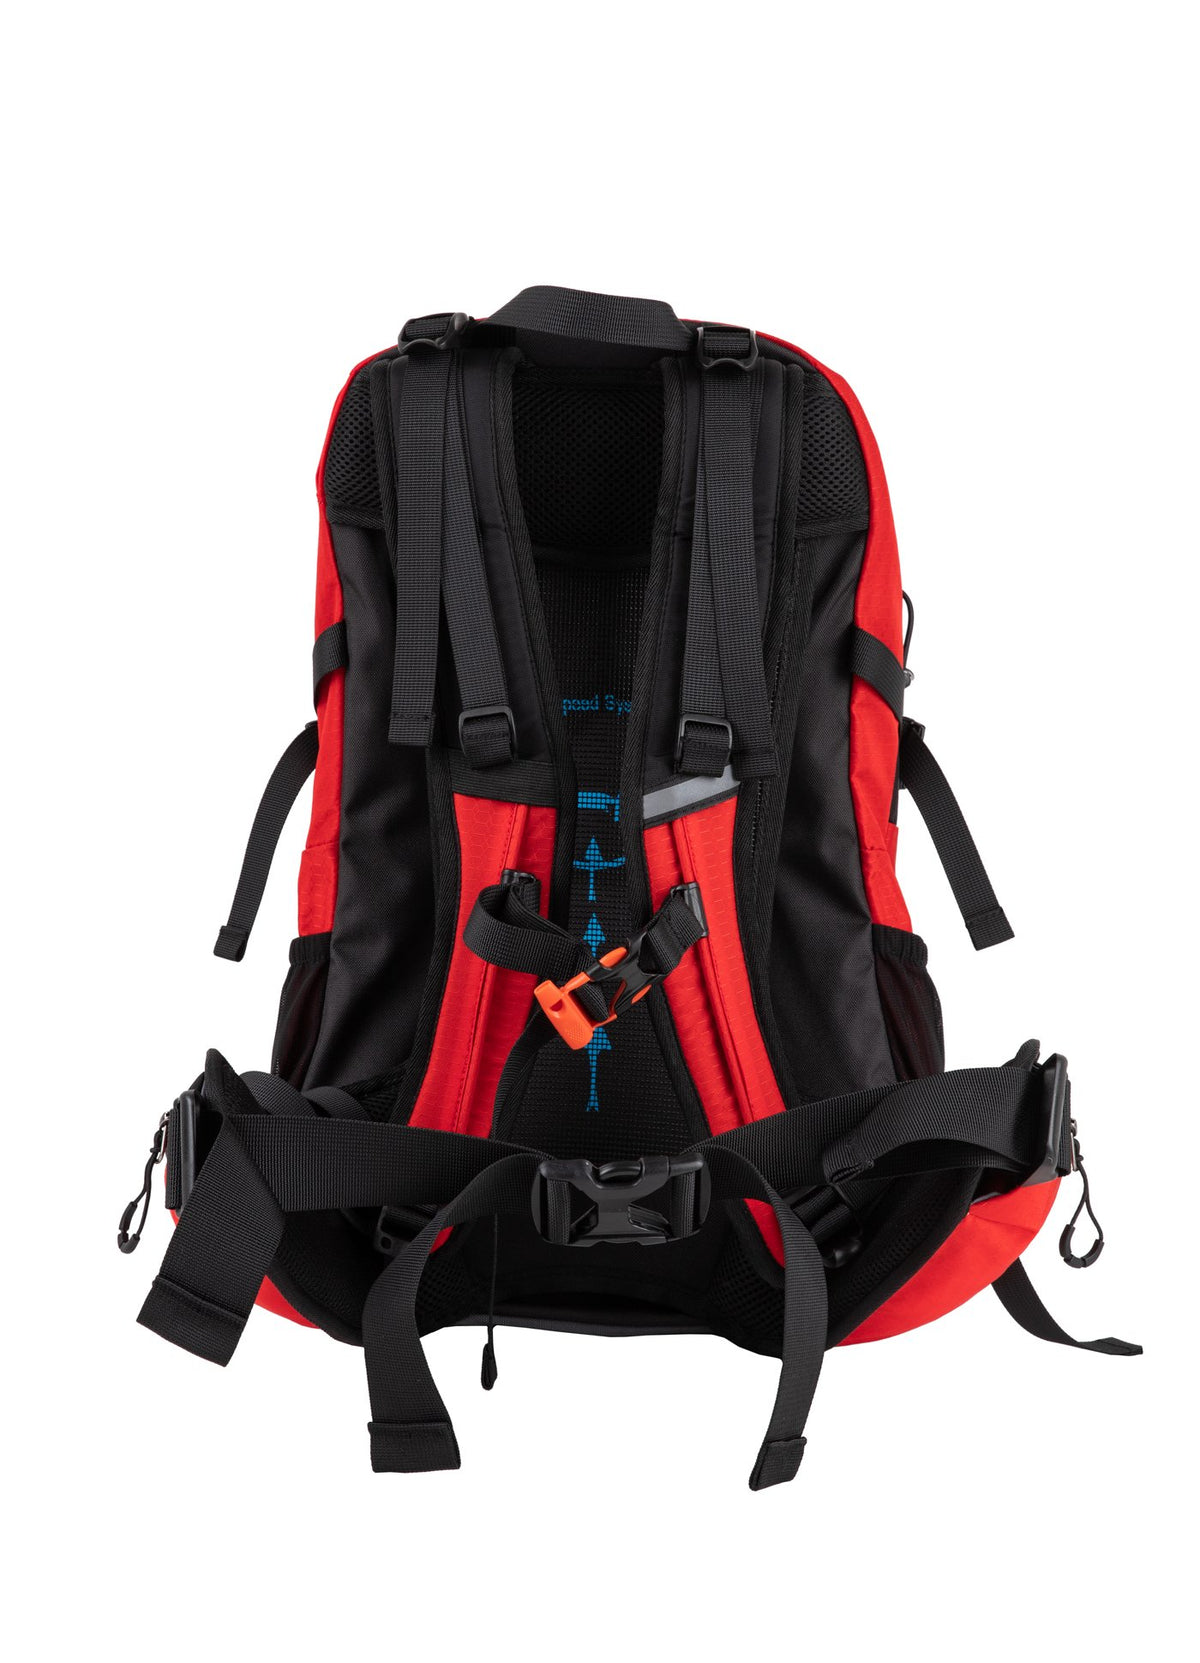 SPORT BACKPACK PB Sports Red - Pitbull West Coast U.S.A.